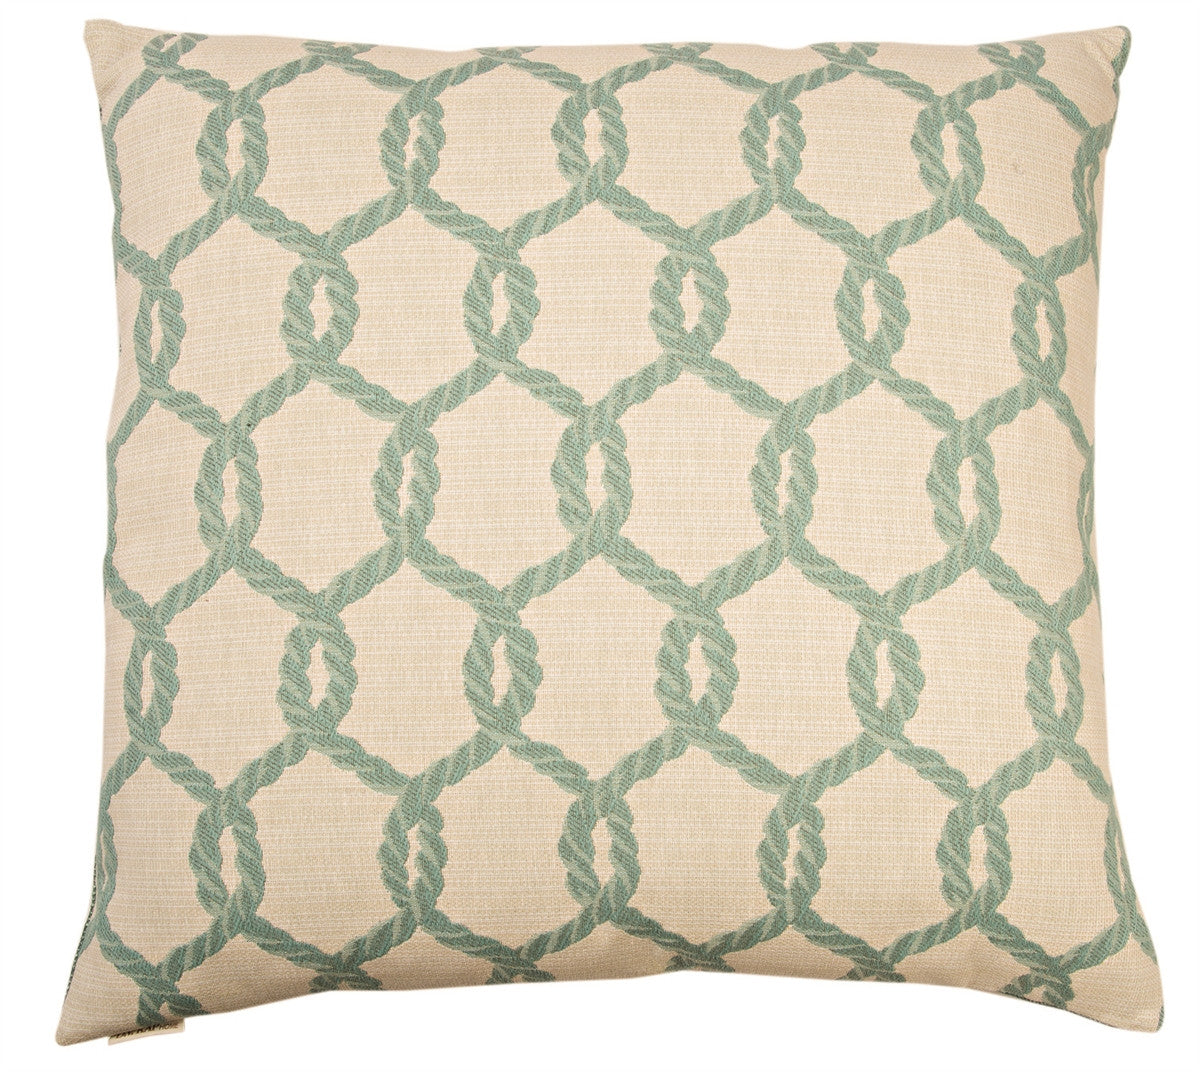 DV Kap Home - Hawser Toss Pillow